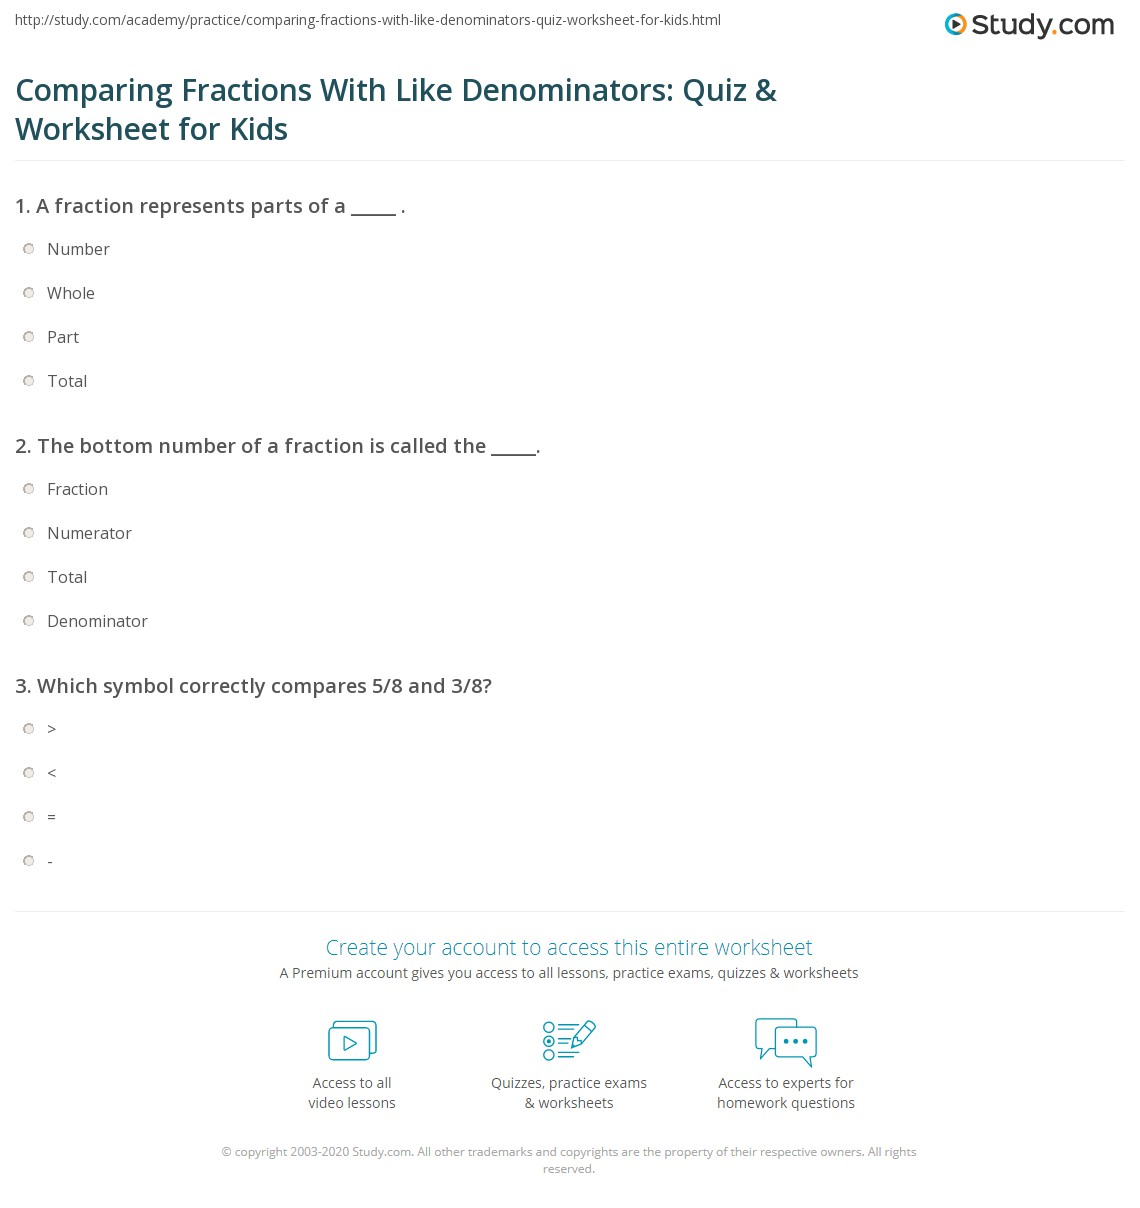 Comparing Fractions With Like Denominators Quiz